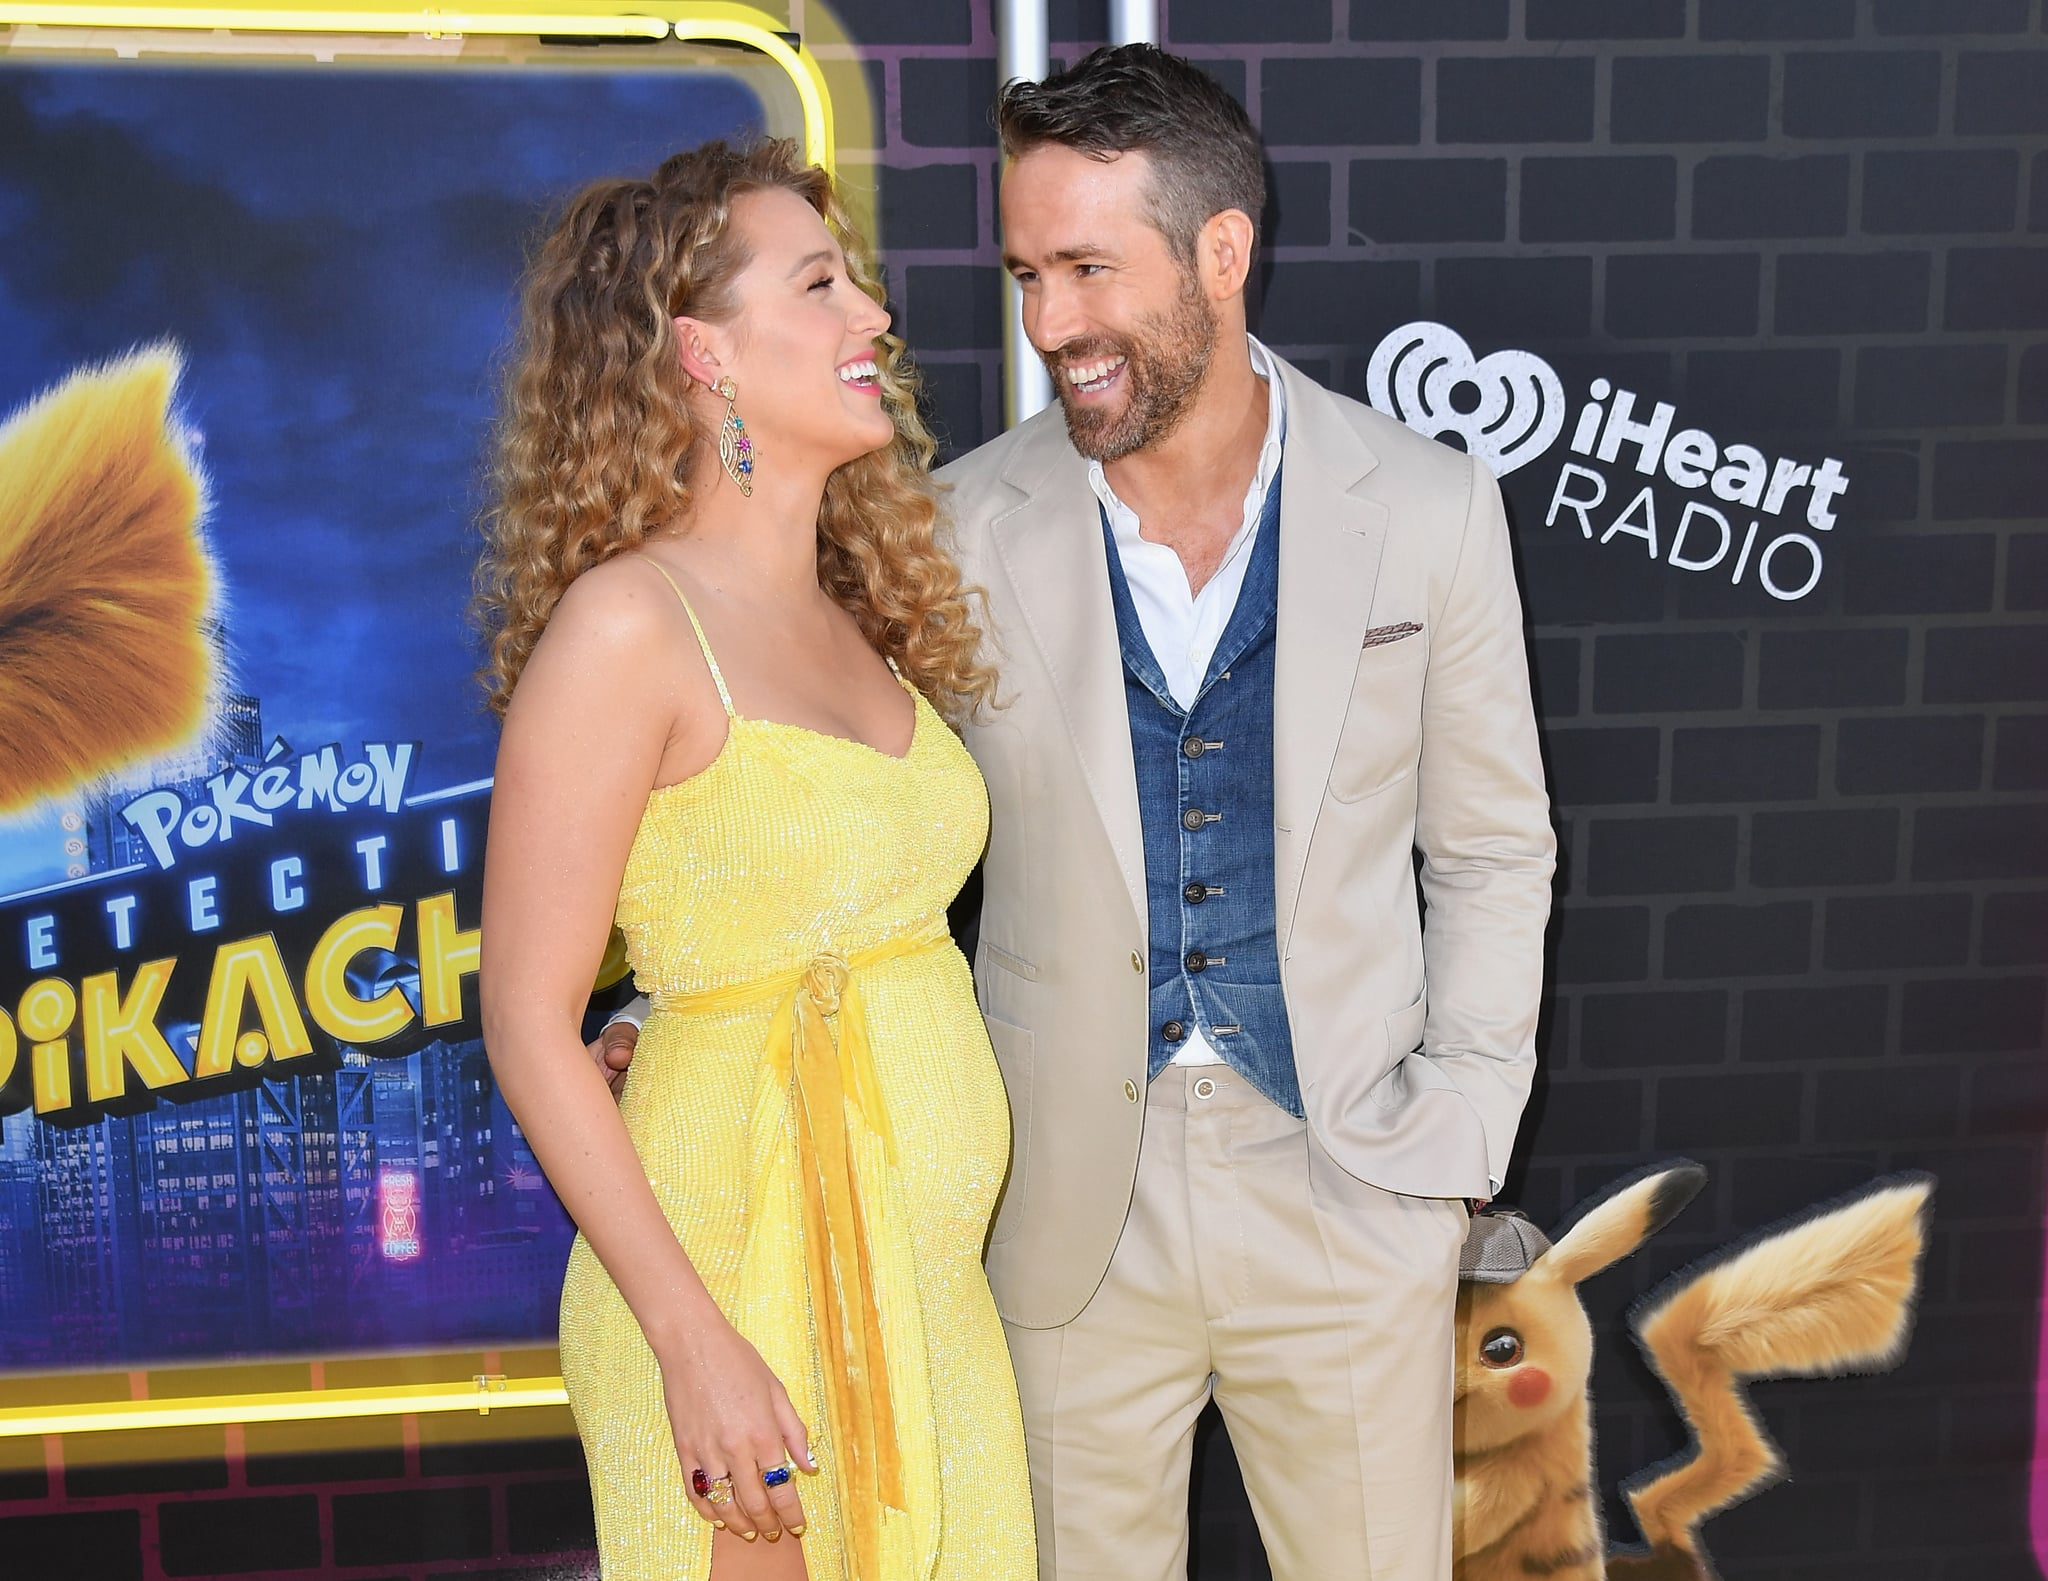 US actor Ryan Reynolds and his wife actress Blake Lively attend the premiere of